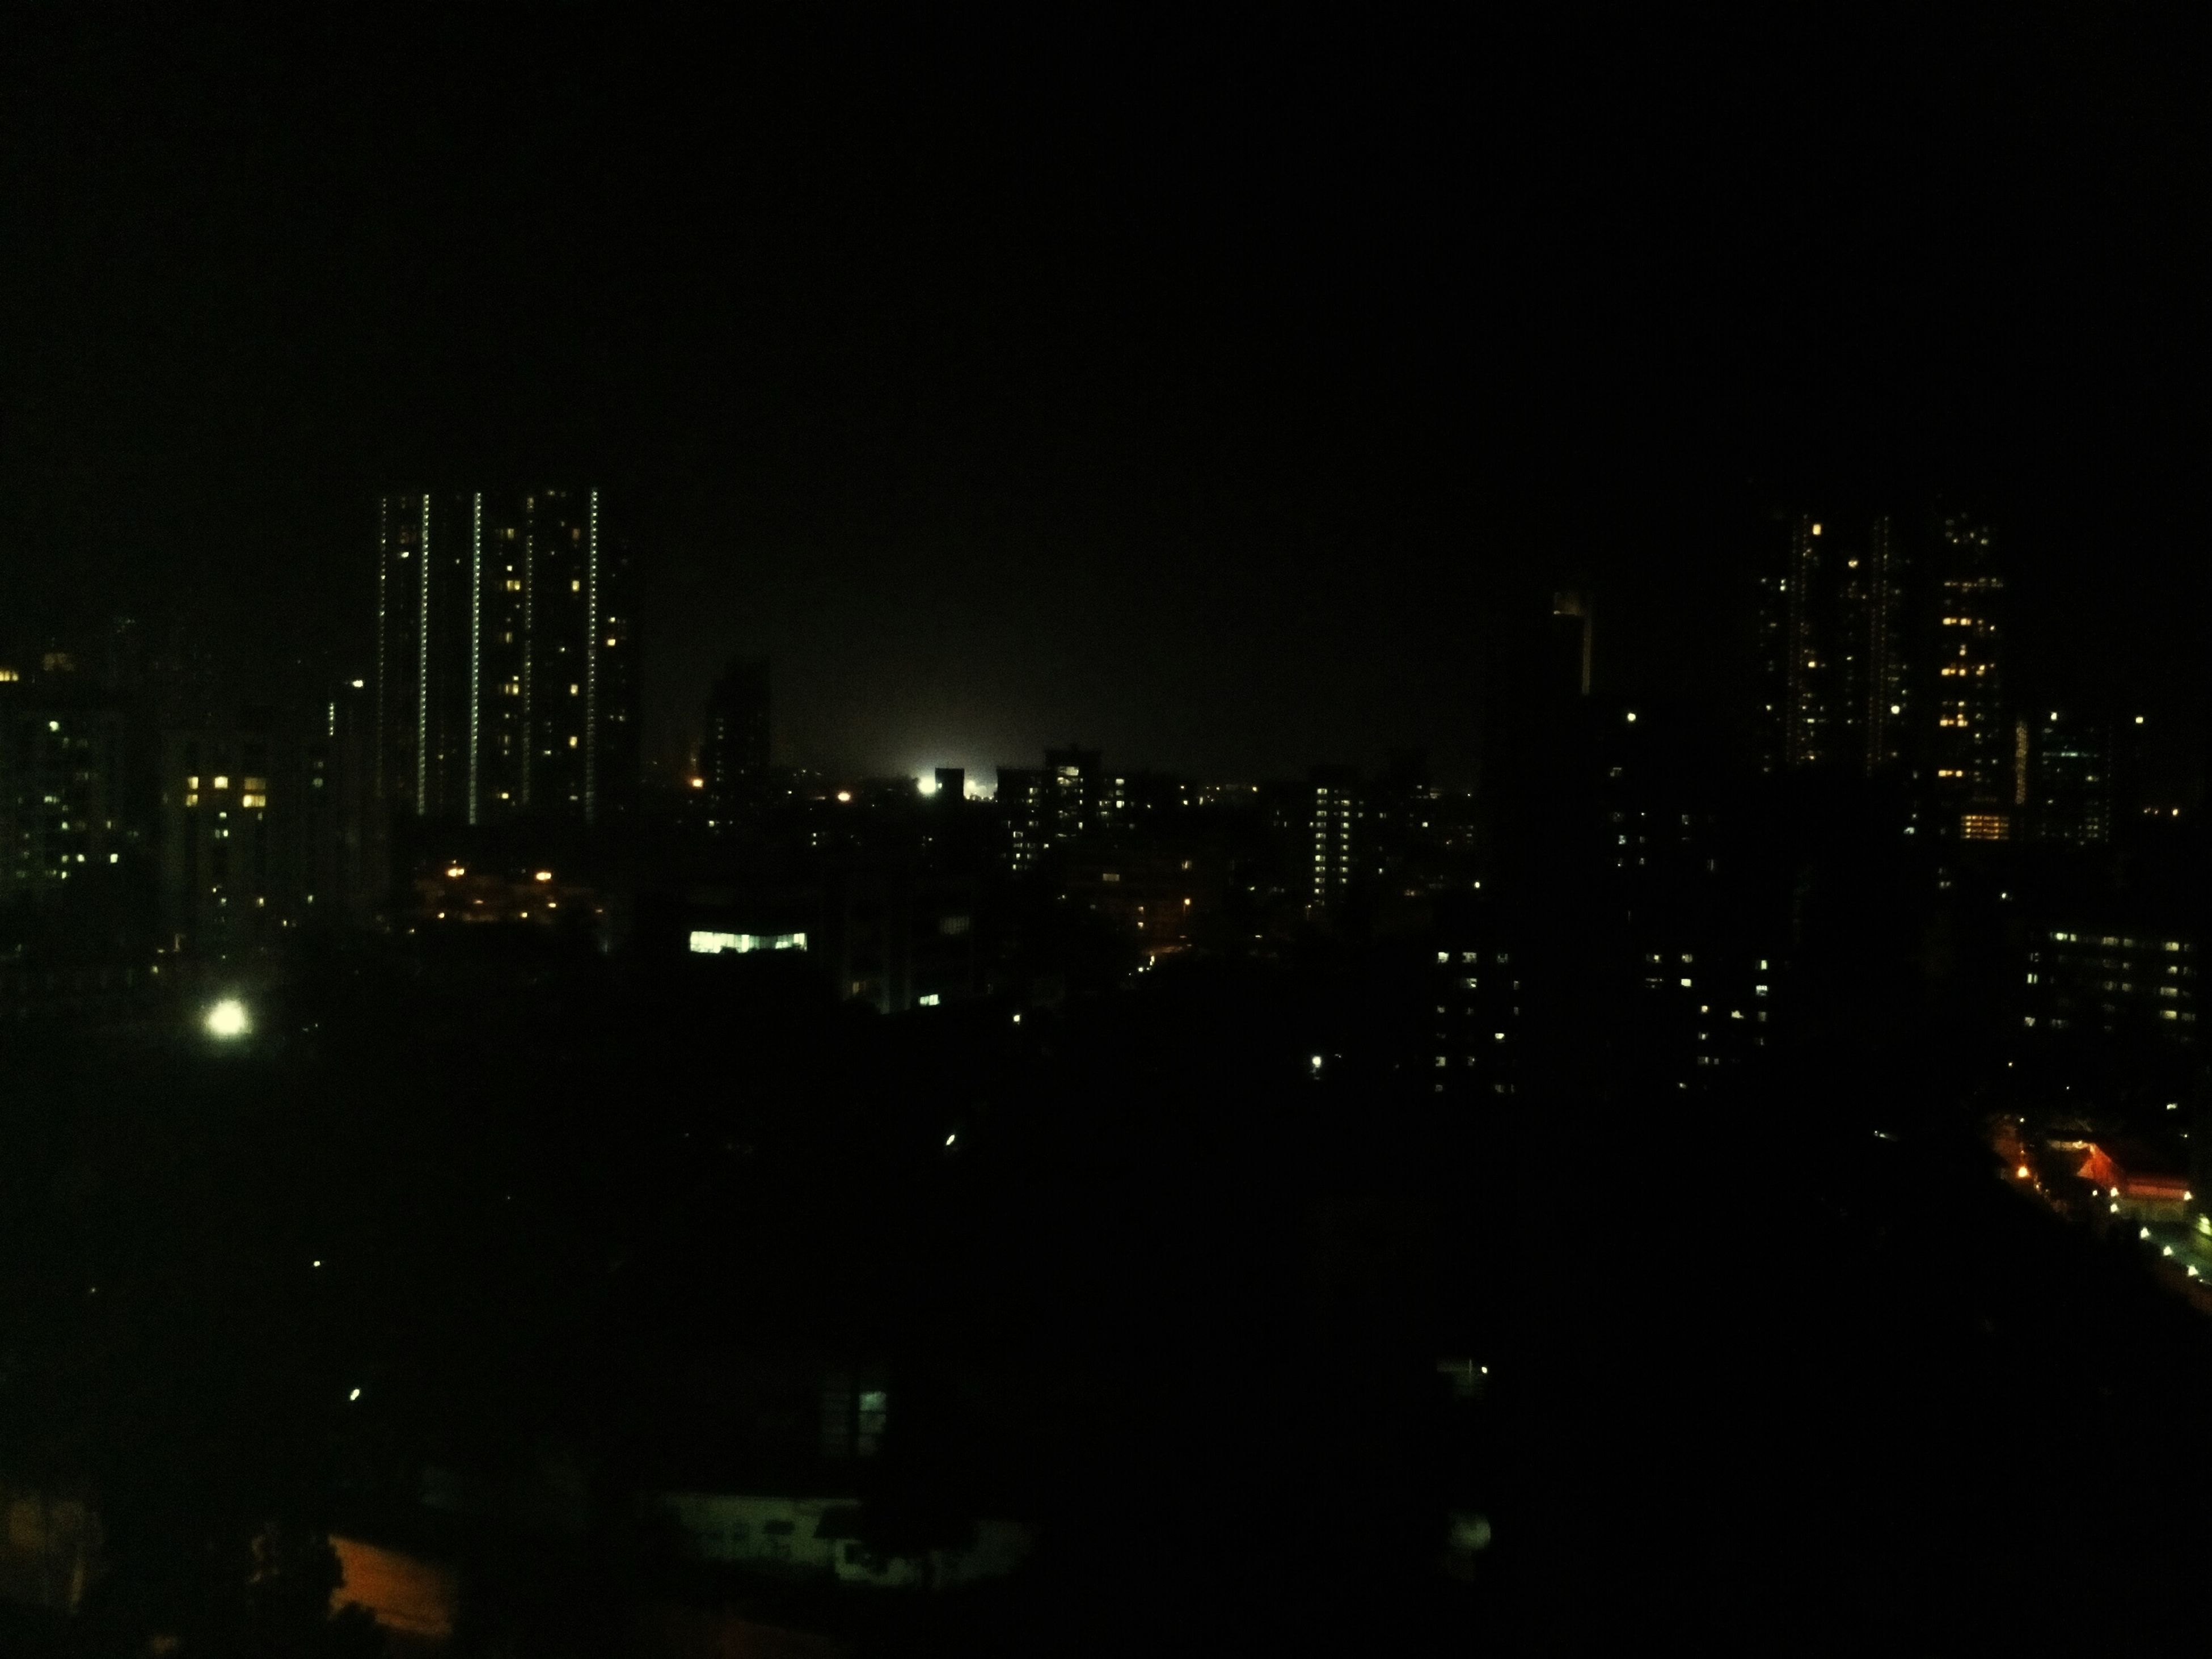 night, illuminated, city, building exterior, architecture, cityscape, built structure, skyscraper, urban skyline, modern, office building, tower, tall - high, dark, copy space, city life, crowded, clear sky, development, high angle view